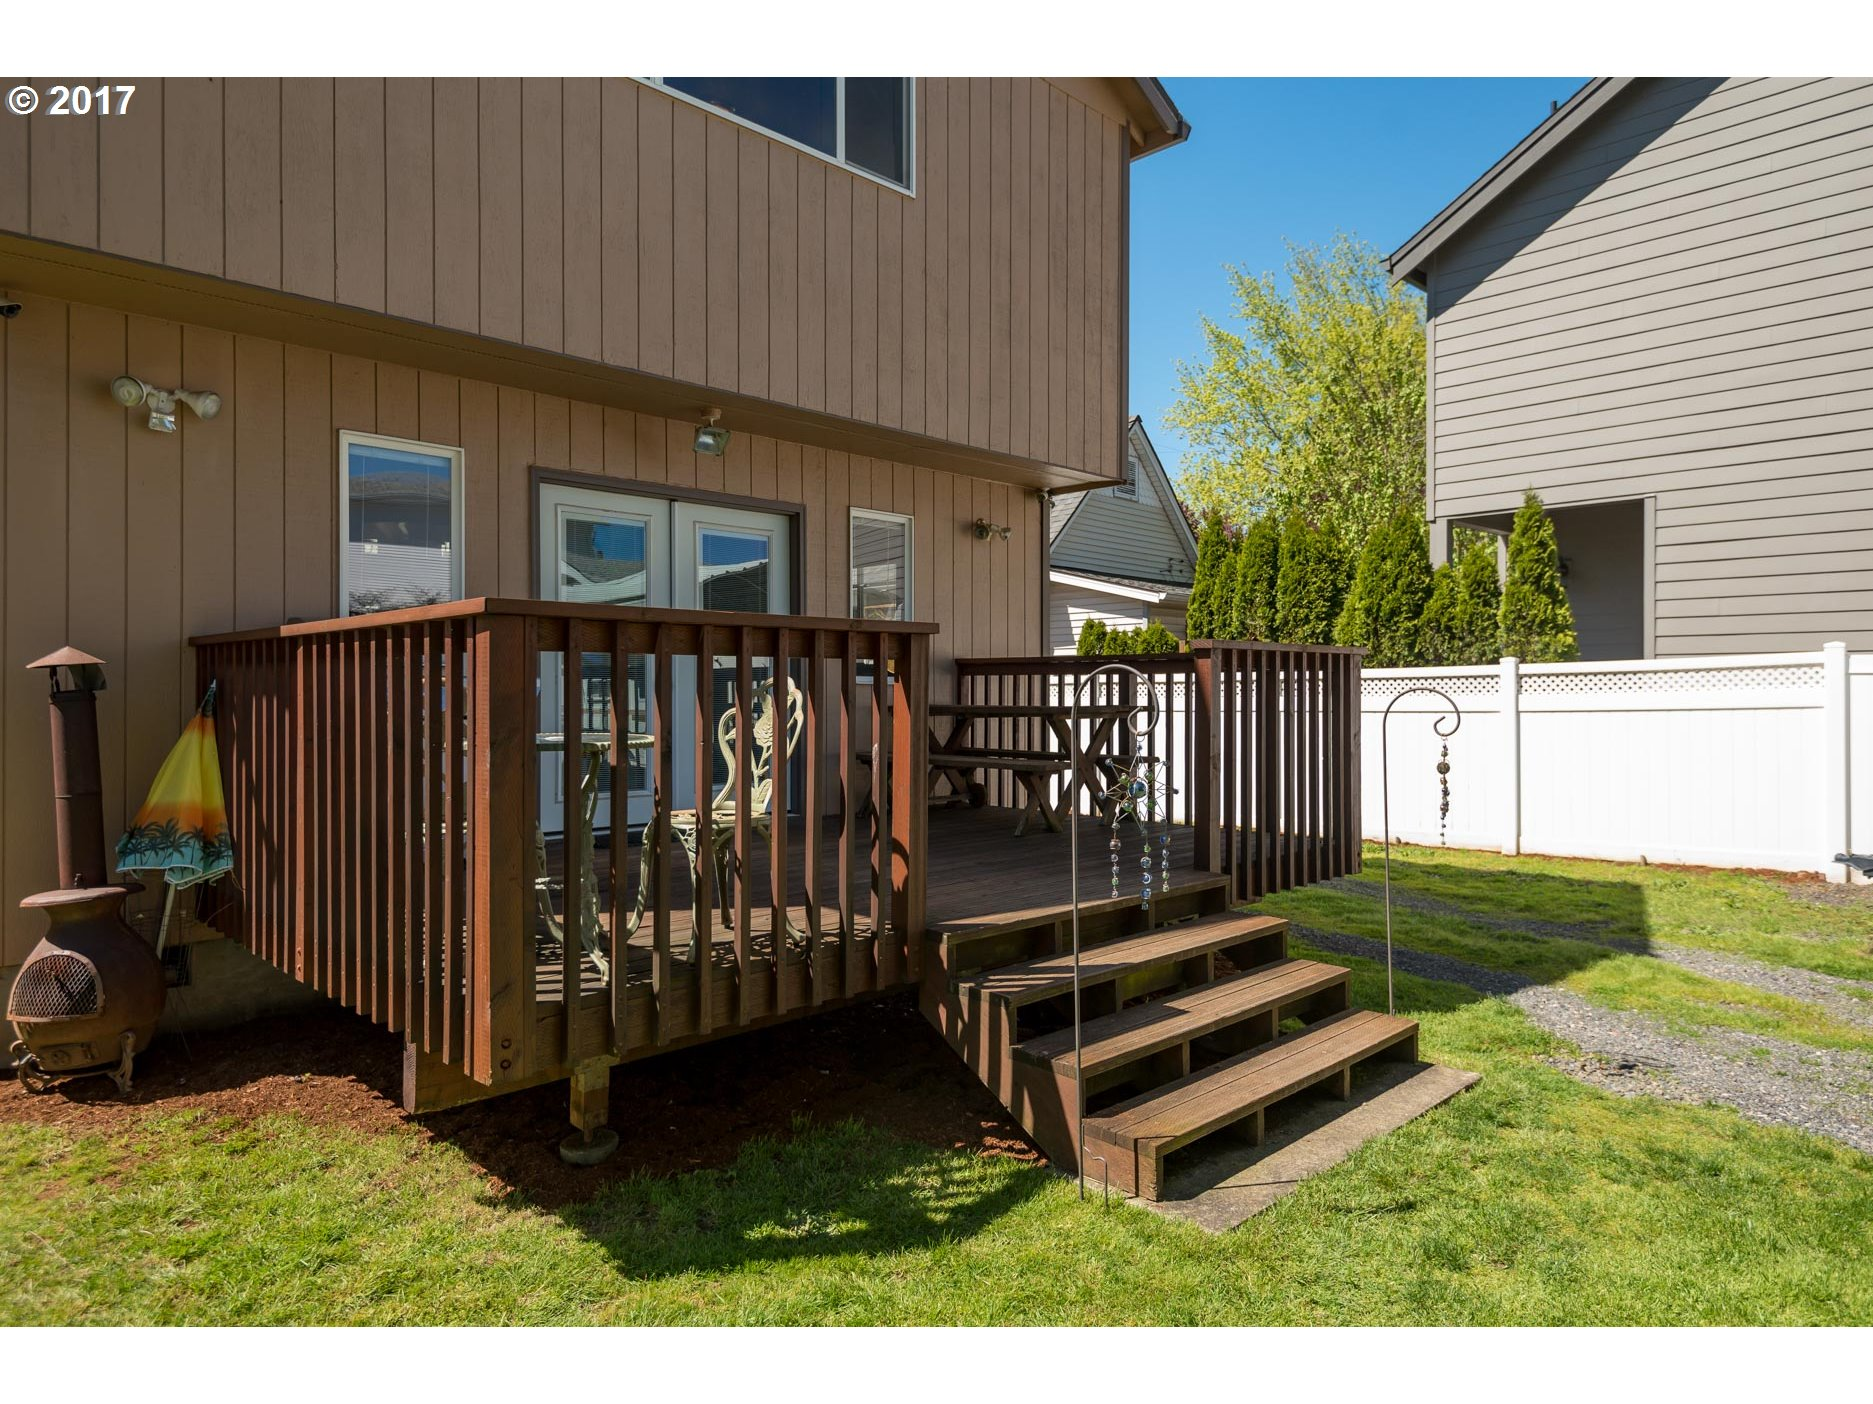 224 NE 57th AVE Portland, OR 97213 - MLS #: 17582342